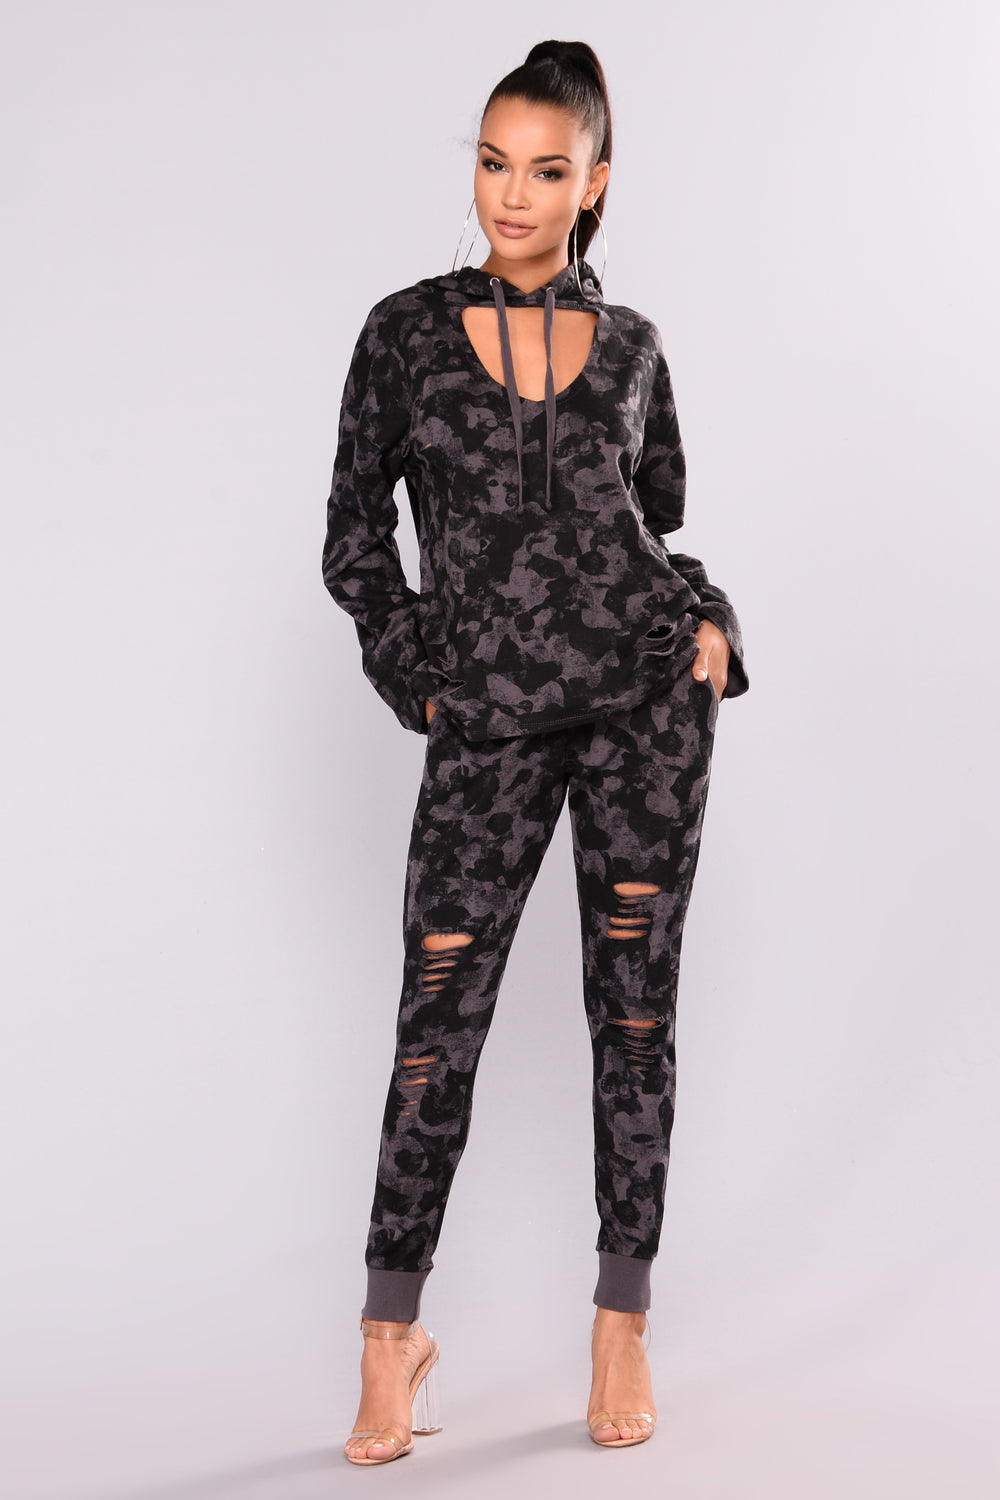 Damage Control Camo Top - Charcoal